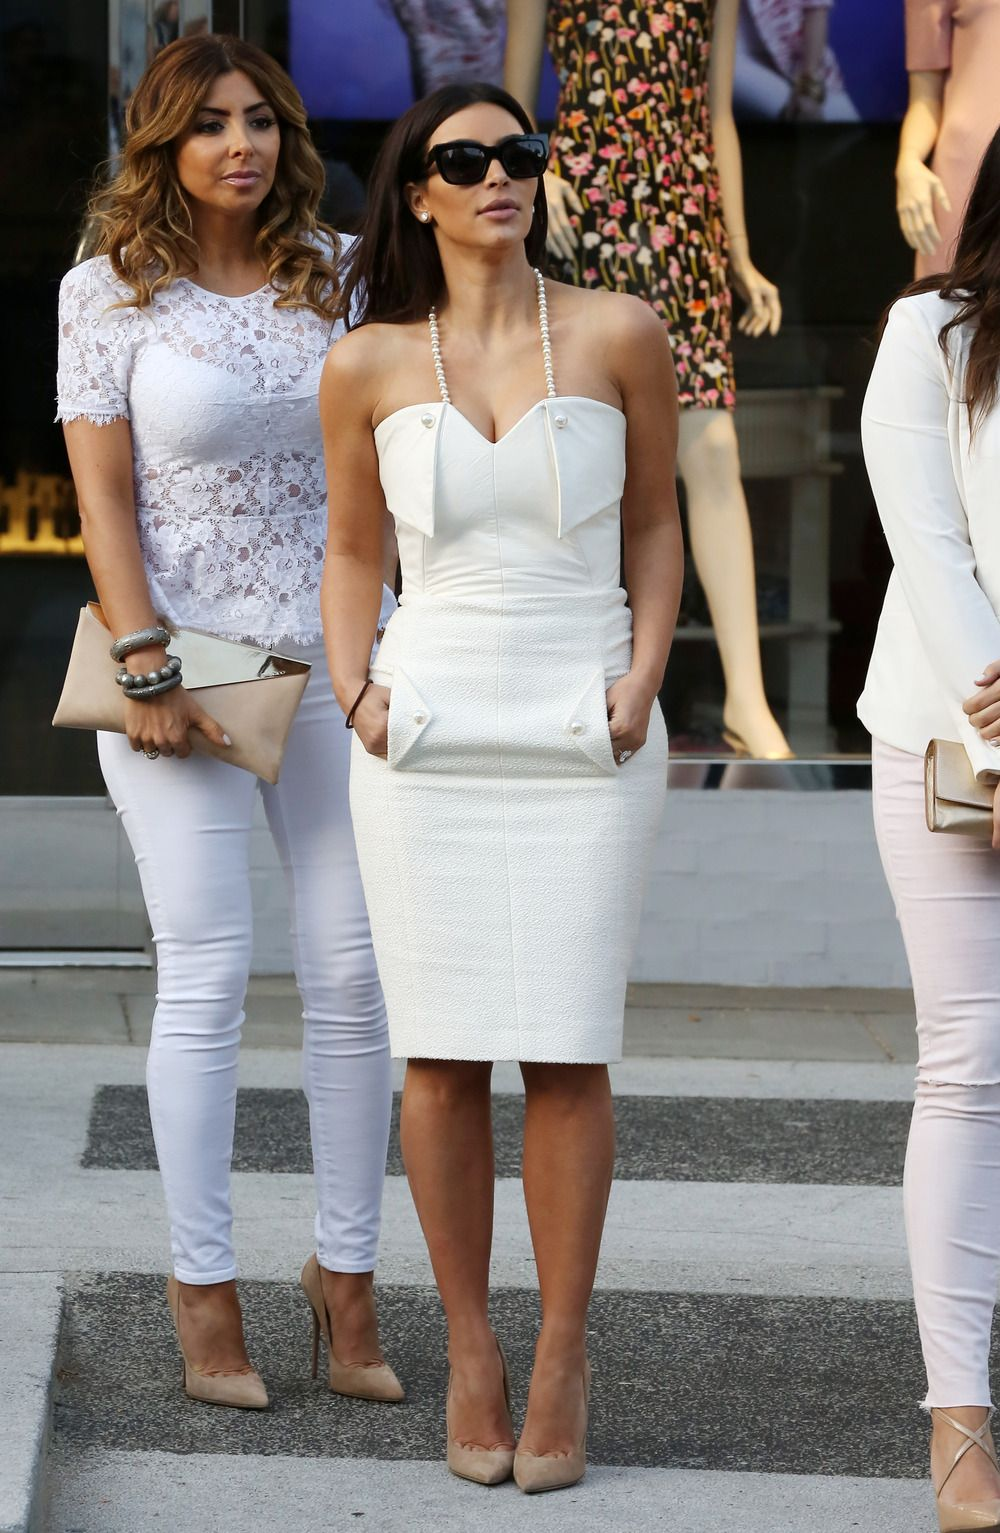 Kim Kardashian Goes Glam in White Dress With Pearls For Bridal ...